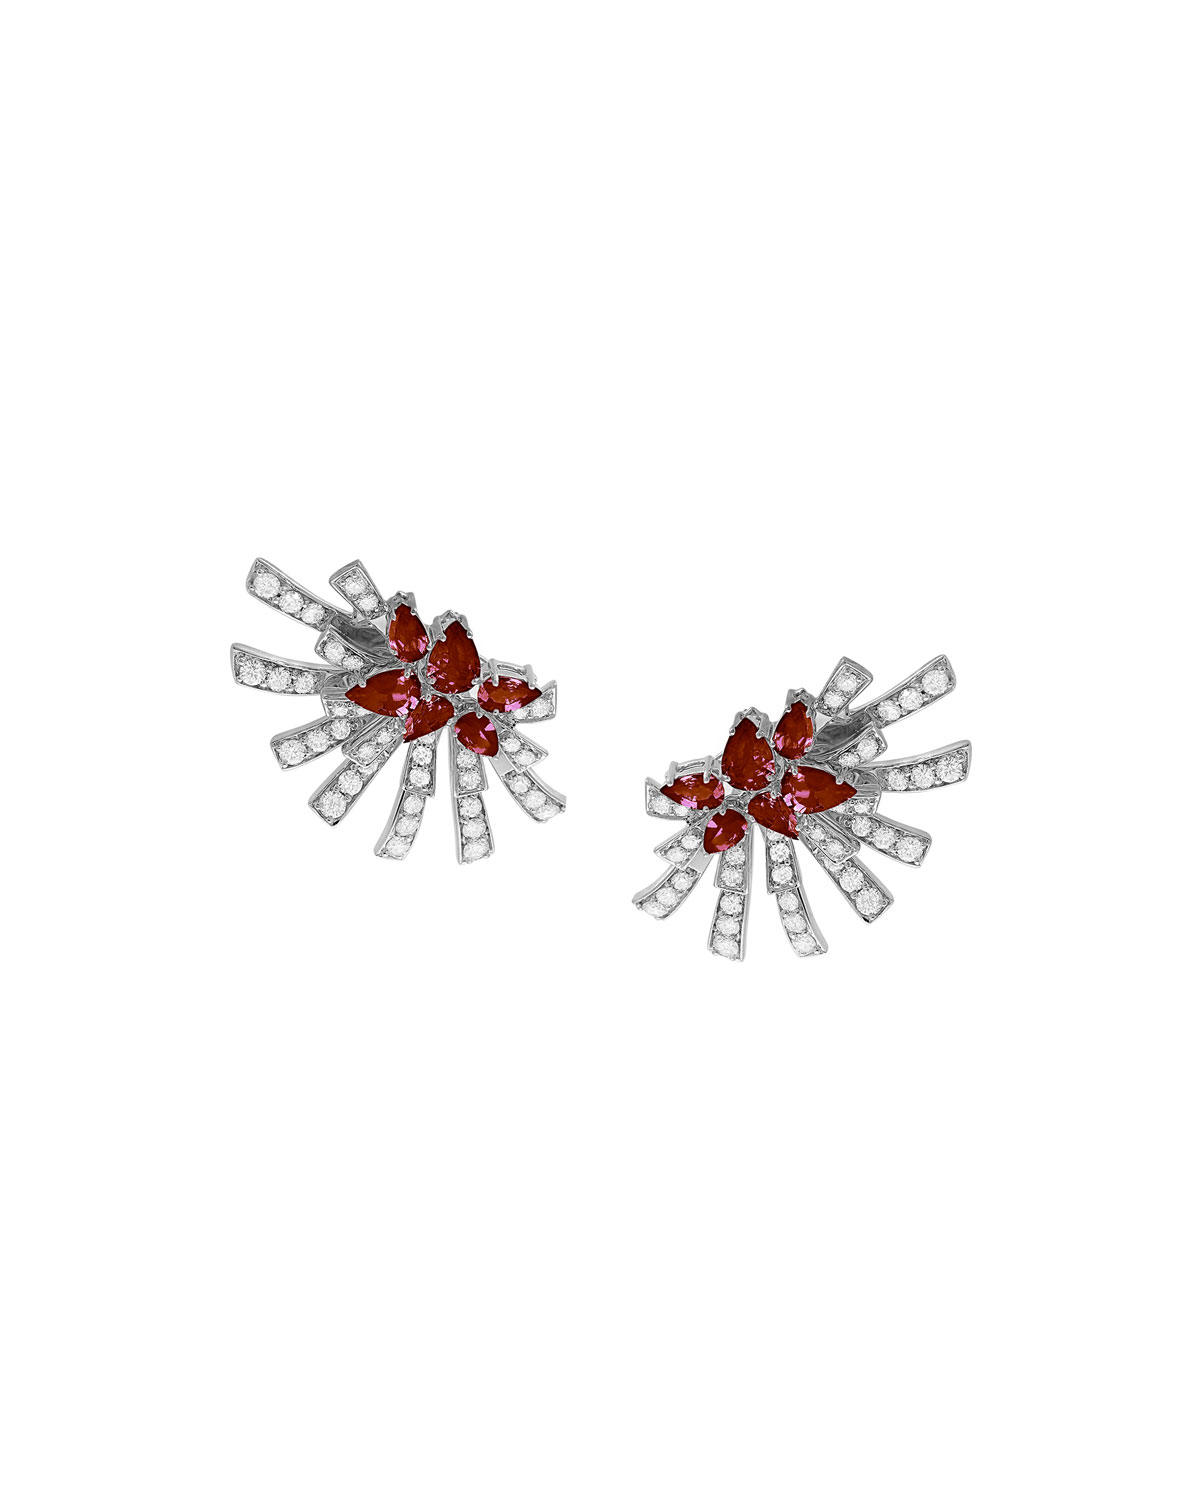 Mirage 18k White Gold Ruby and Diamond Cluster Earrings